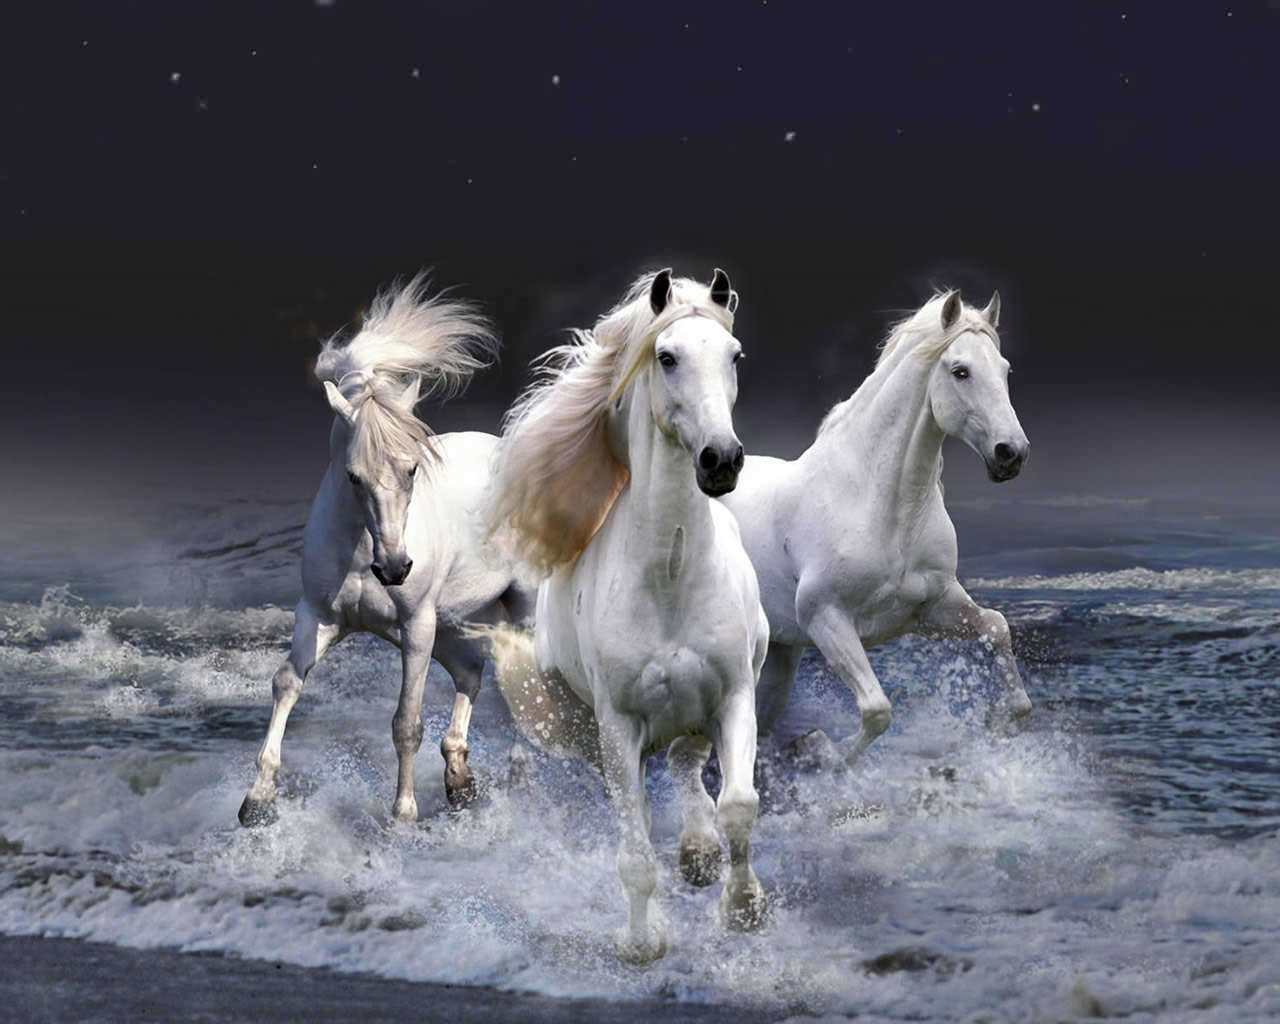 Running Horses Wallpaper   Screensavers   Animals Wallpapers 1280x1024